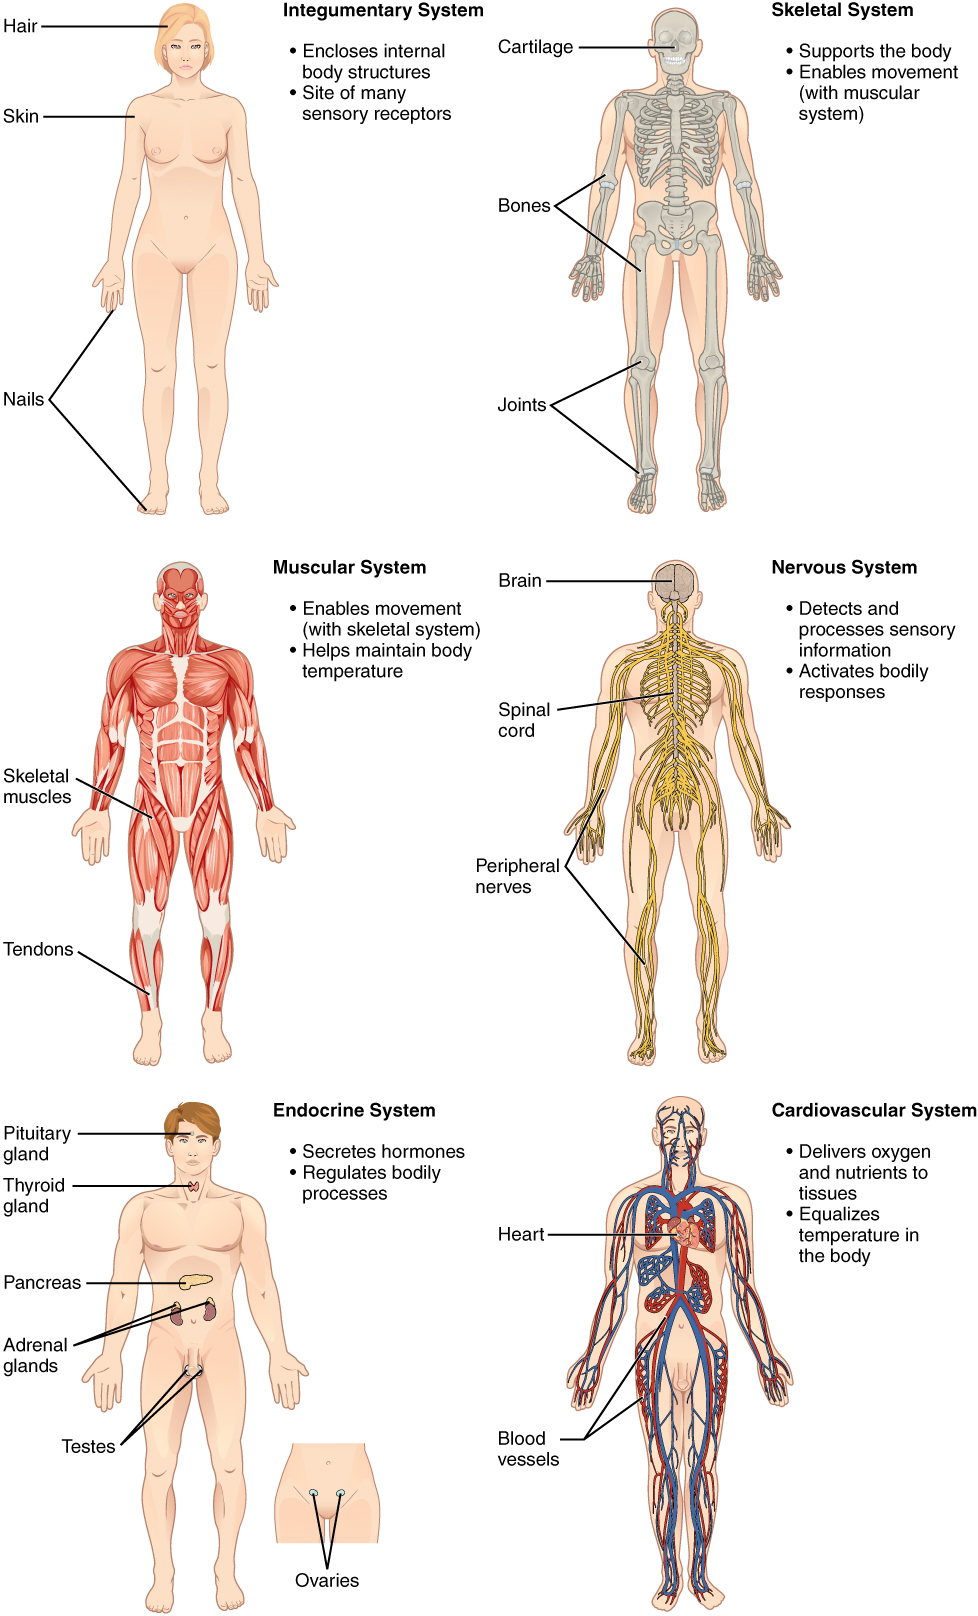 Structural Organization of the Human Body | Biology of Aging